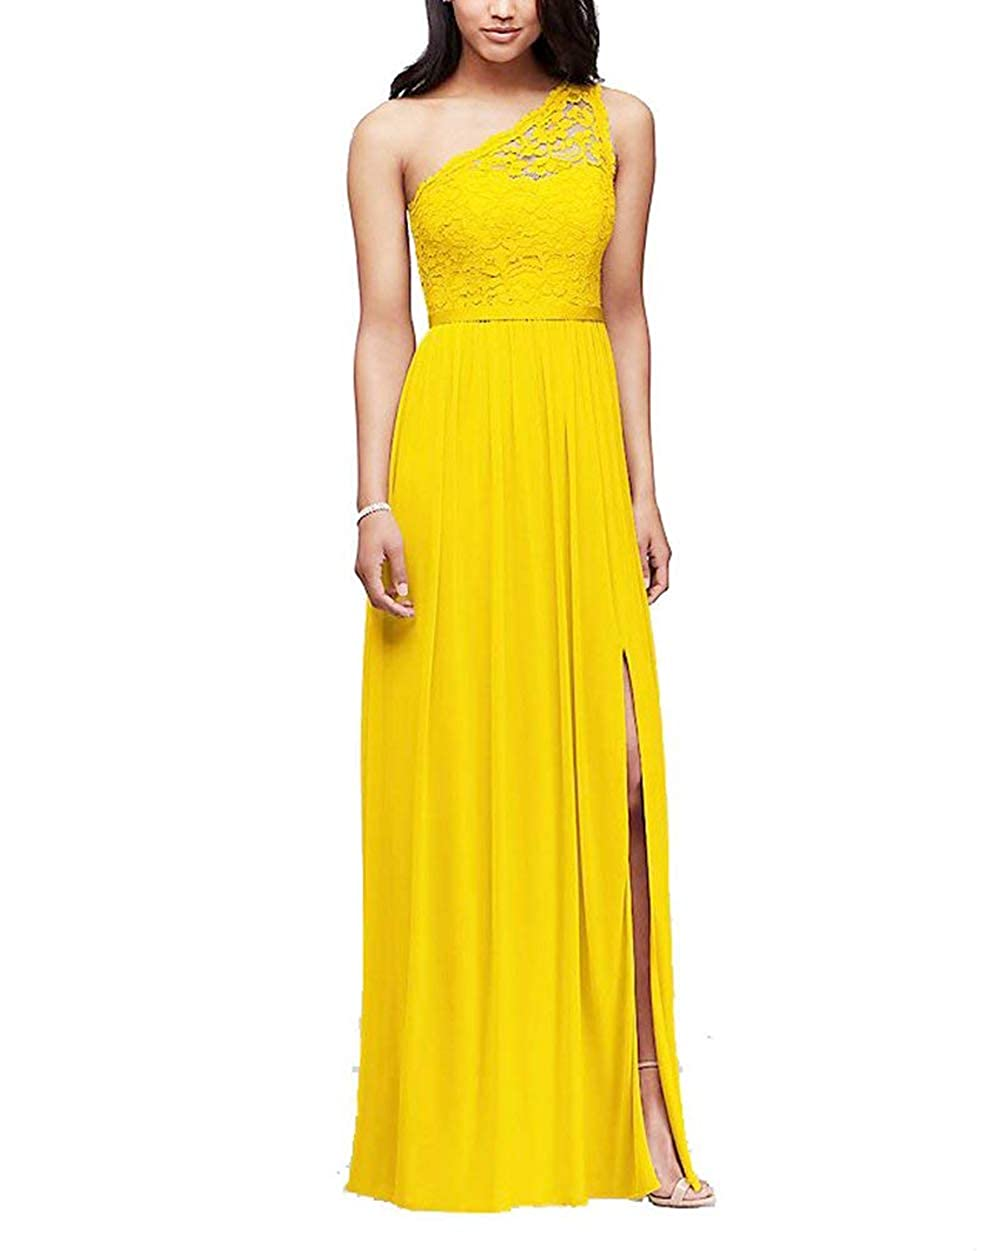 Meaningful One Shoulder Lace Chiffon Bridesmaid Dresses Side Slit Formal Evening Prom Gown